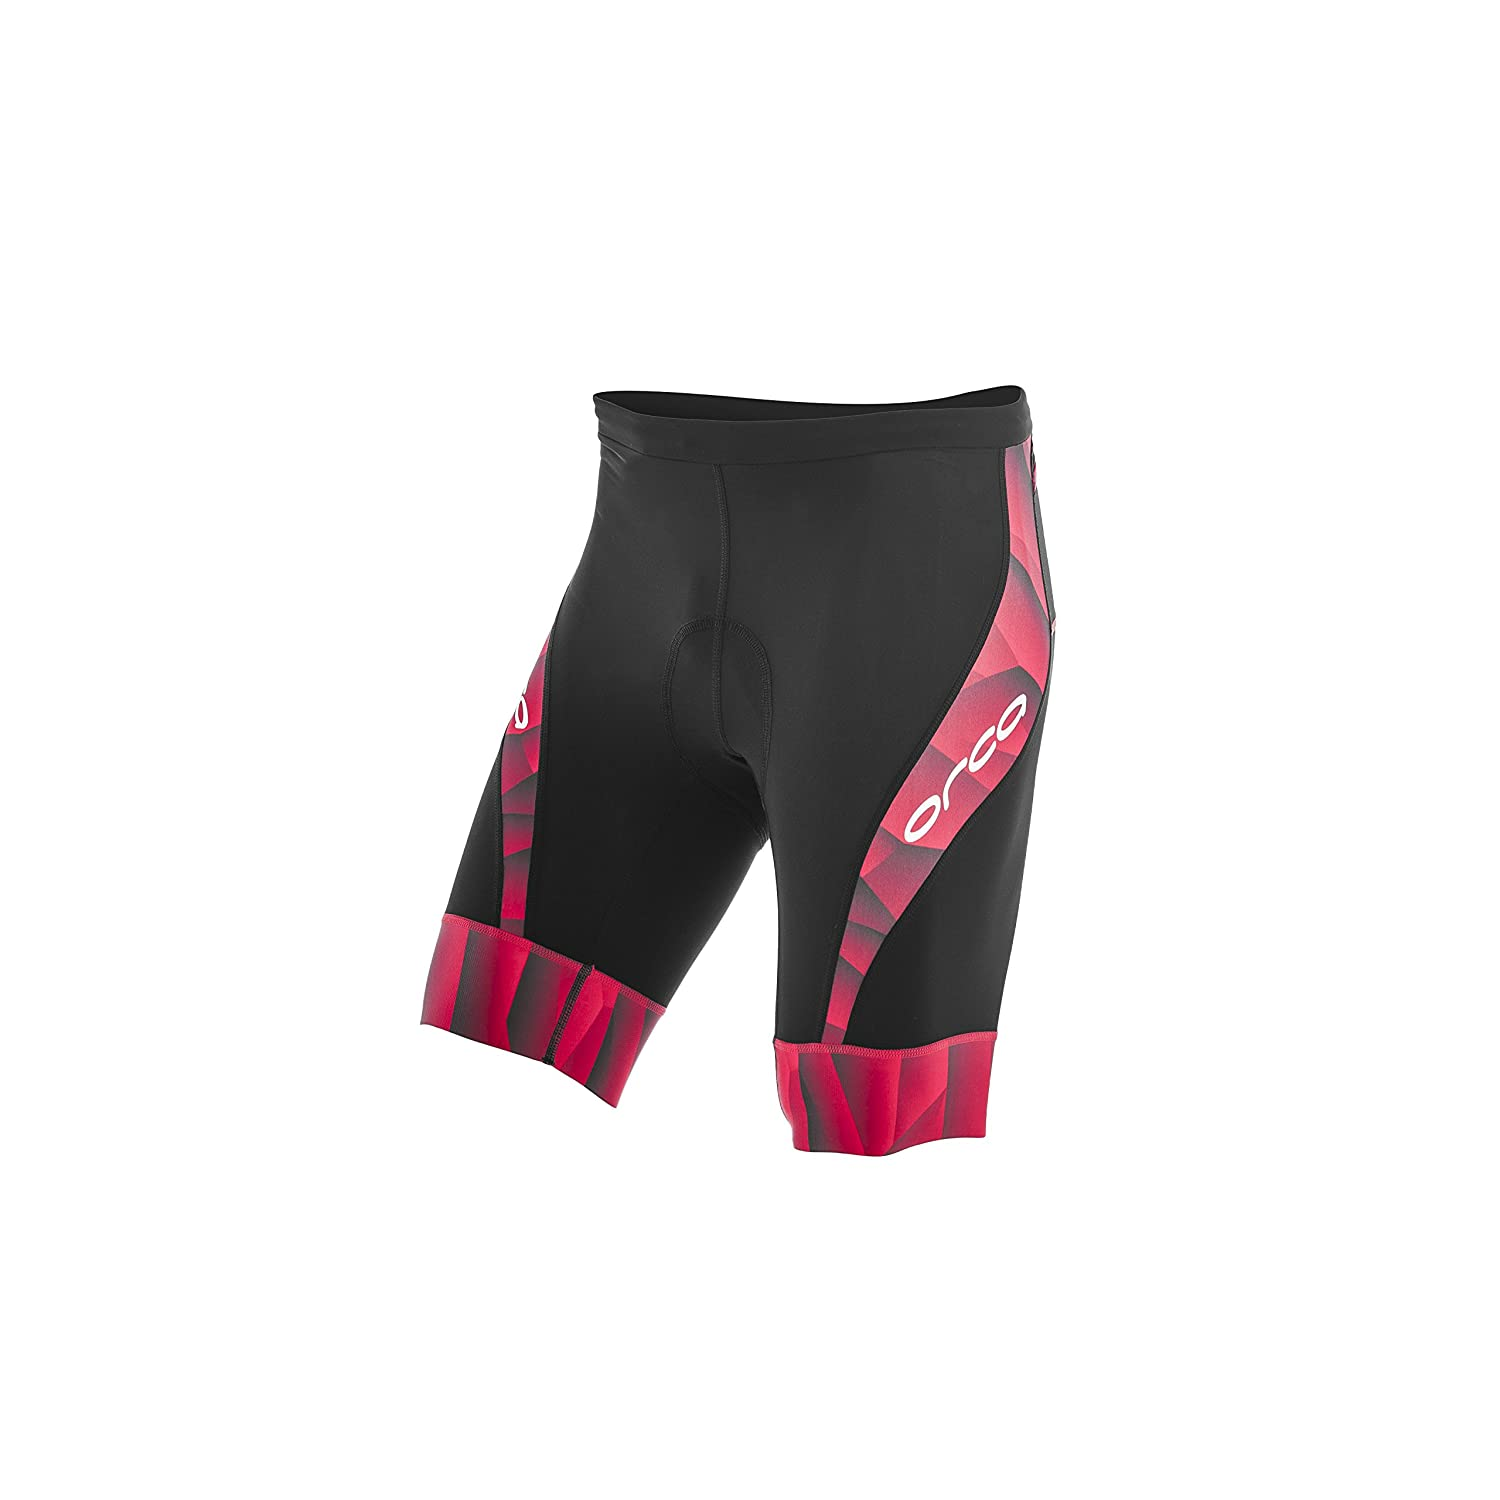 226 Kompress Tri Tech Short Herren - Orca - GVD5